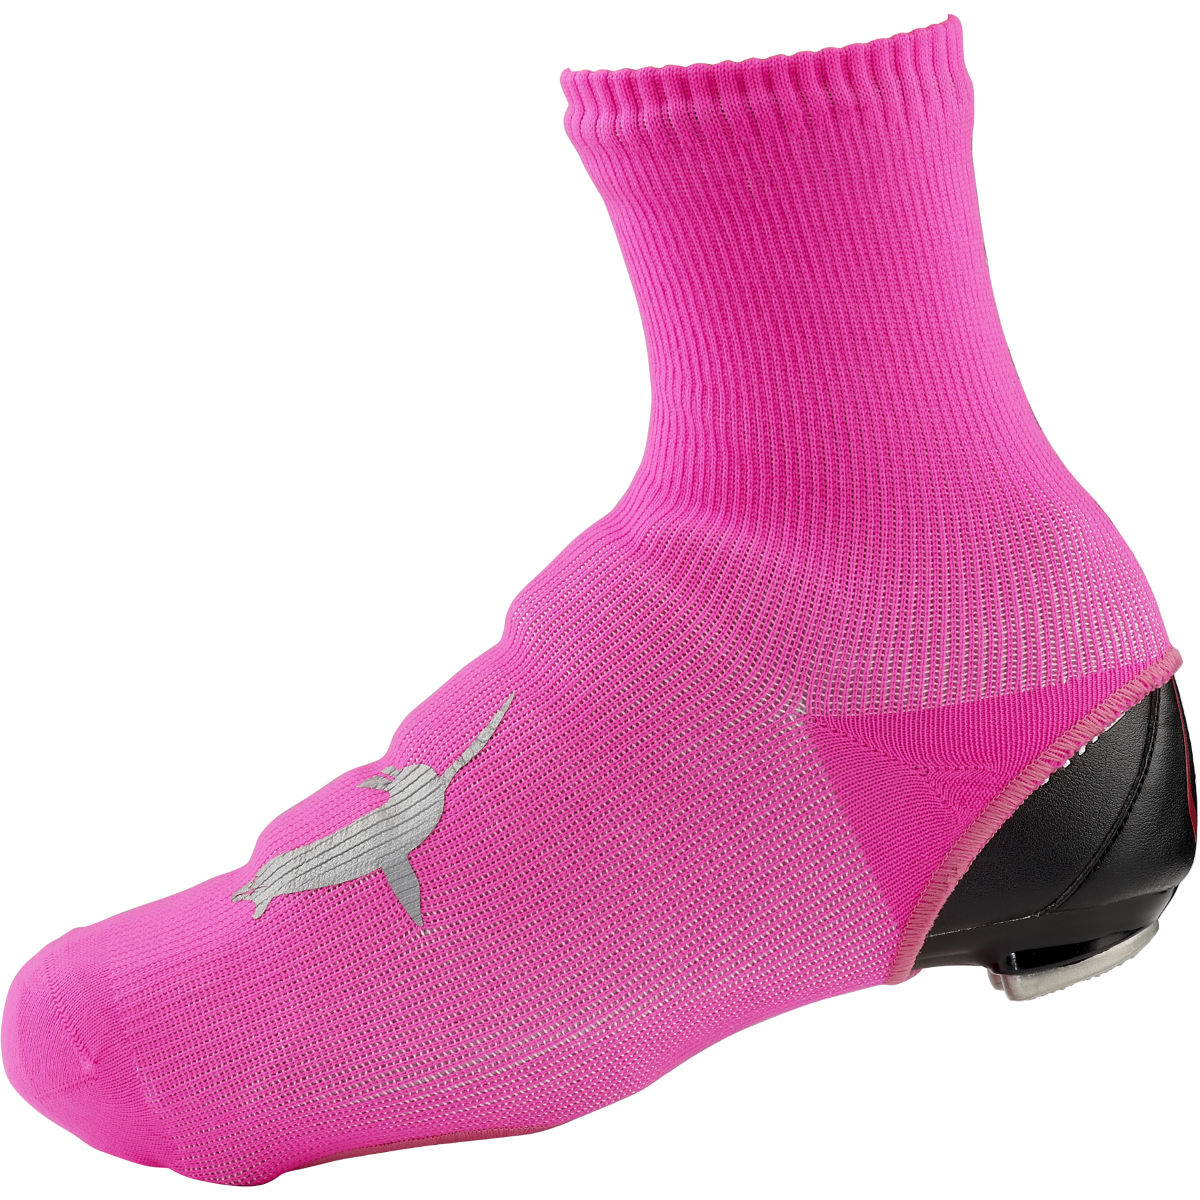 Couvre-chaussures SealSkinz Waterproof - XL Rose Couvre-chaussures